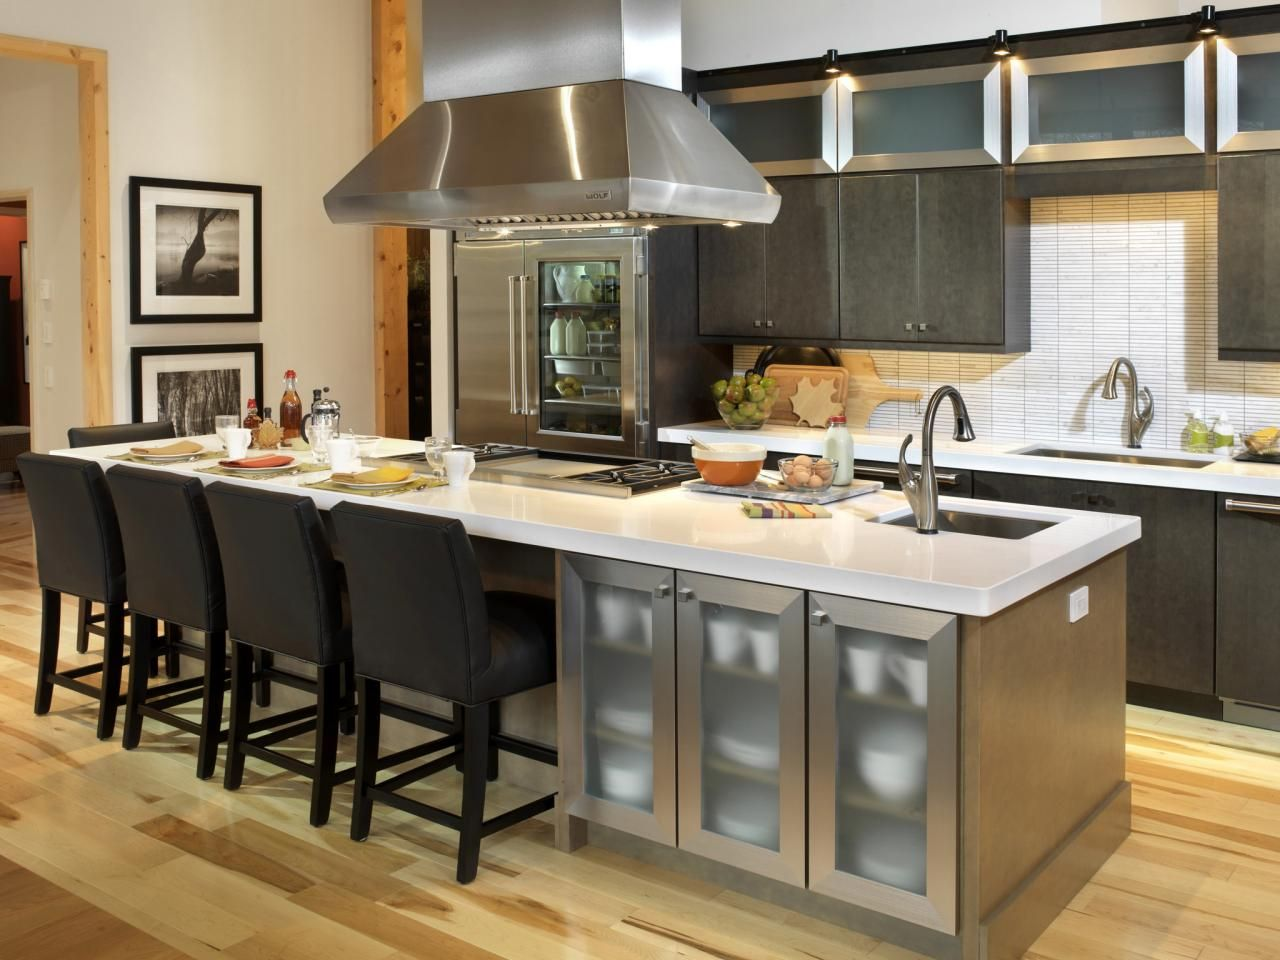 Terrific Kitchen Island Table:licious Amusing Large Kitchen Islands With  Seating And Storage Gas Stove With Cooking Hood Gray Kitchen Cabinet Wooden  Floor